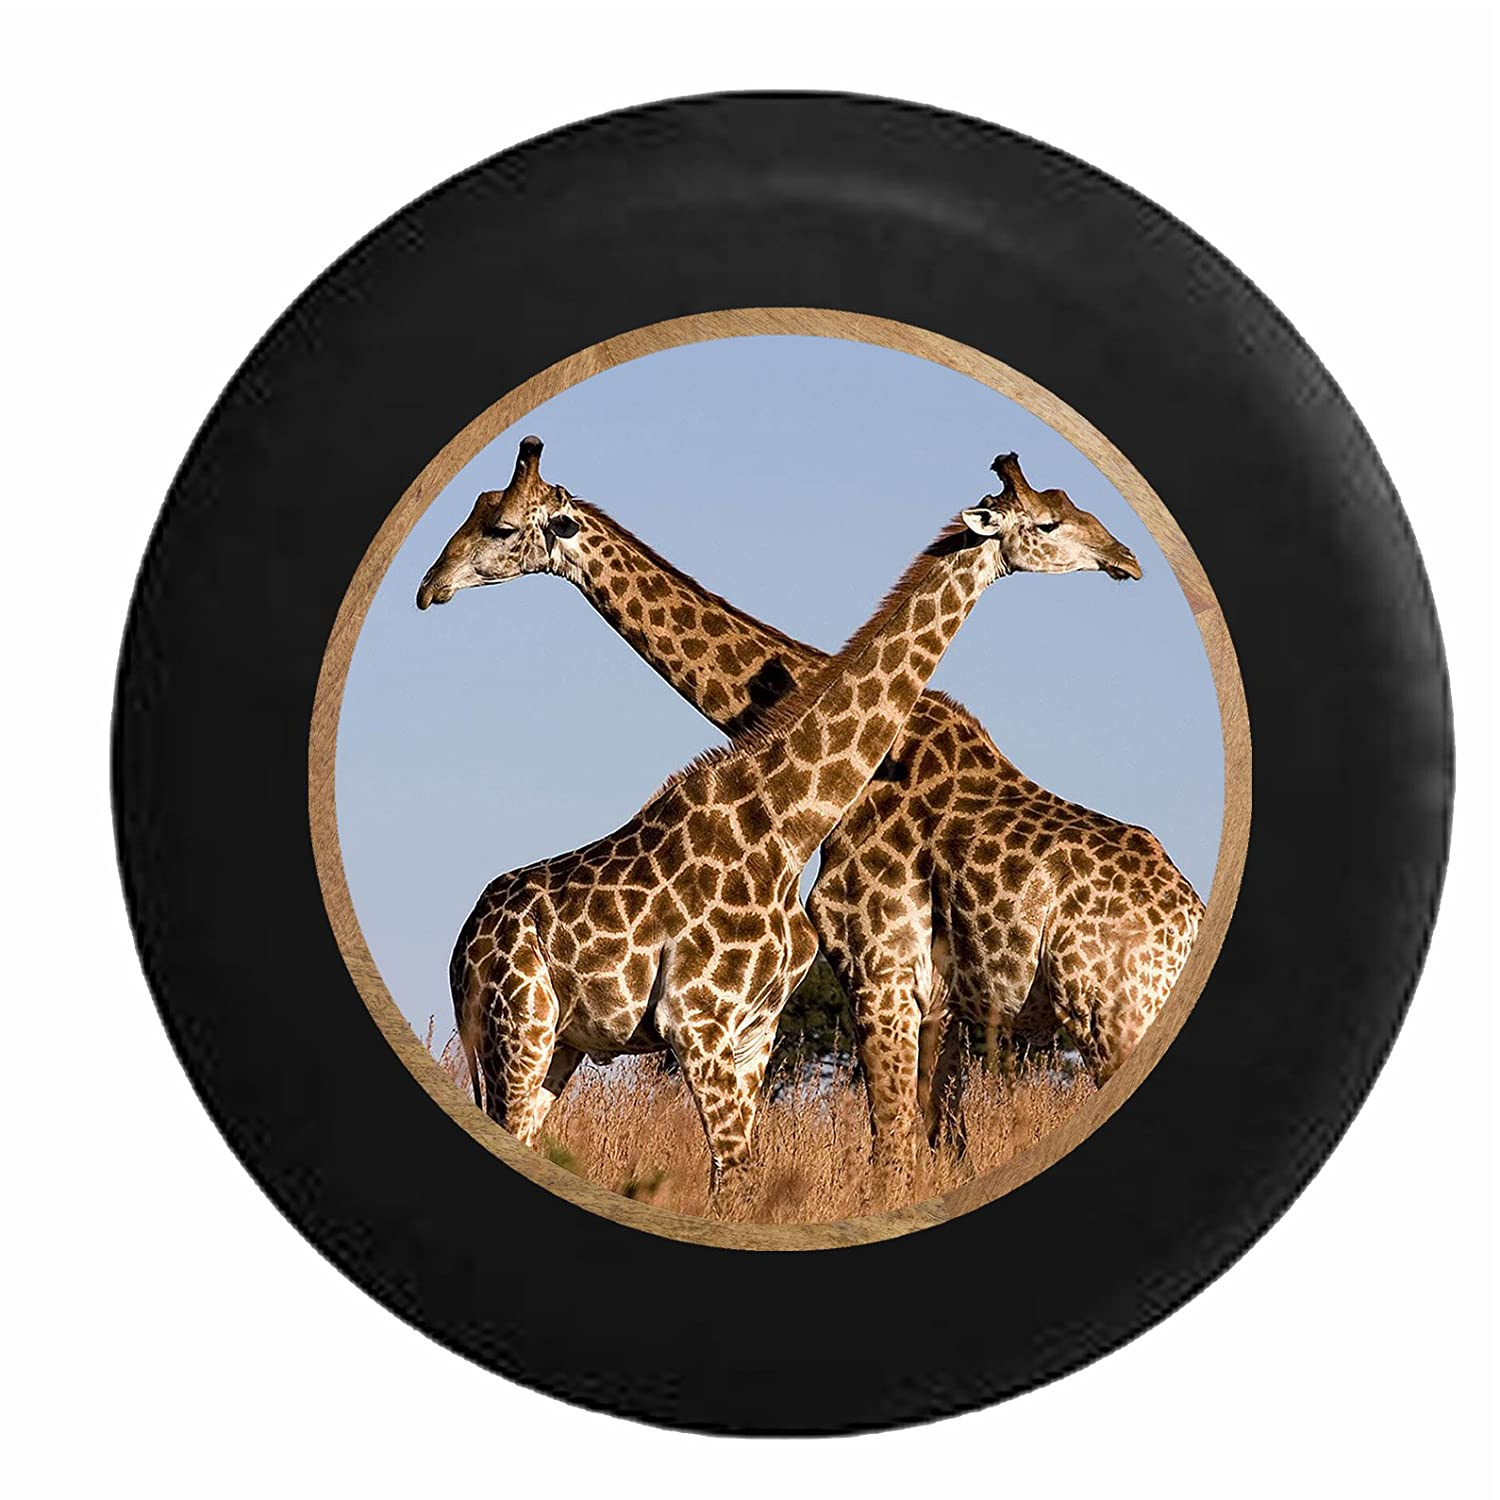 Full Color Giraffe Couple in the African Sahara Jeep RV Camper Spare Tire Cover Black 31 in Pike Outdoors